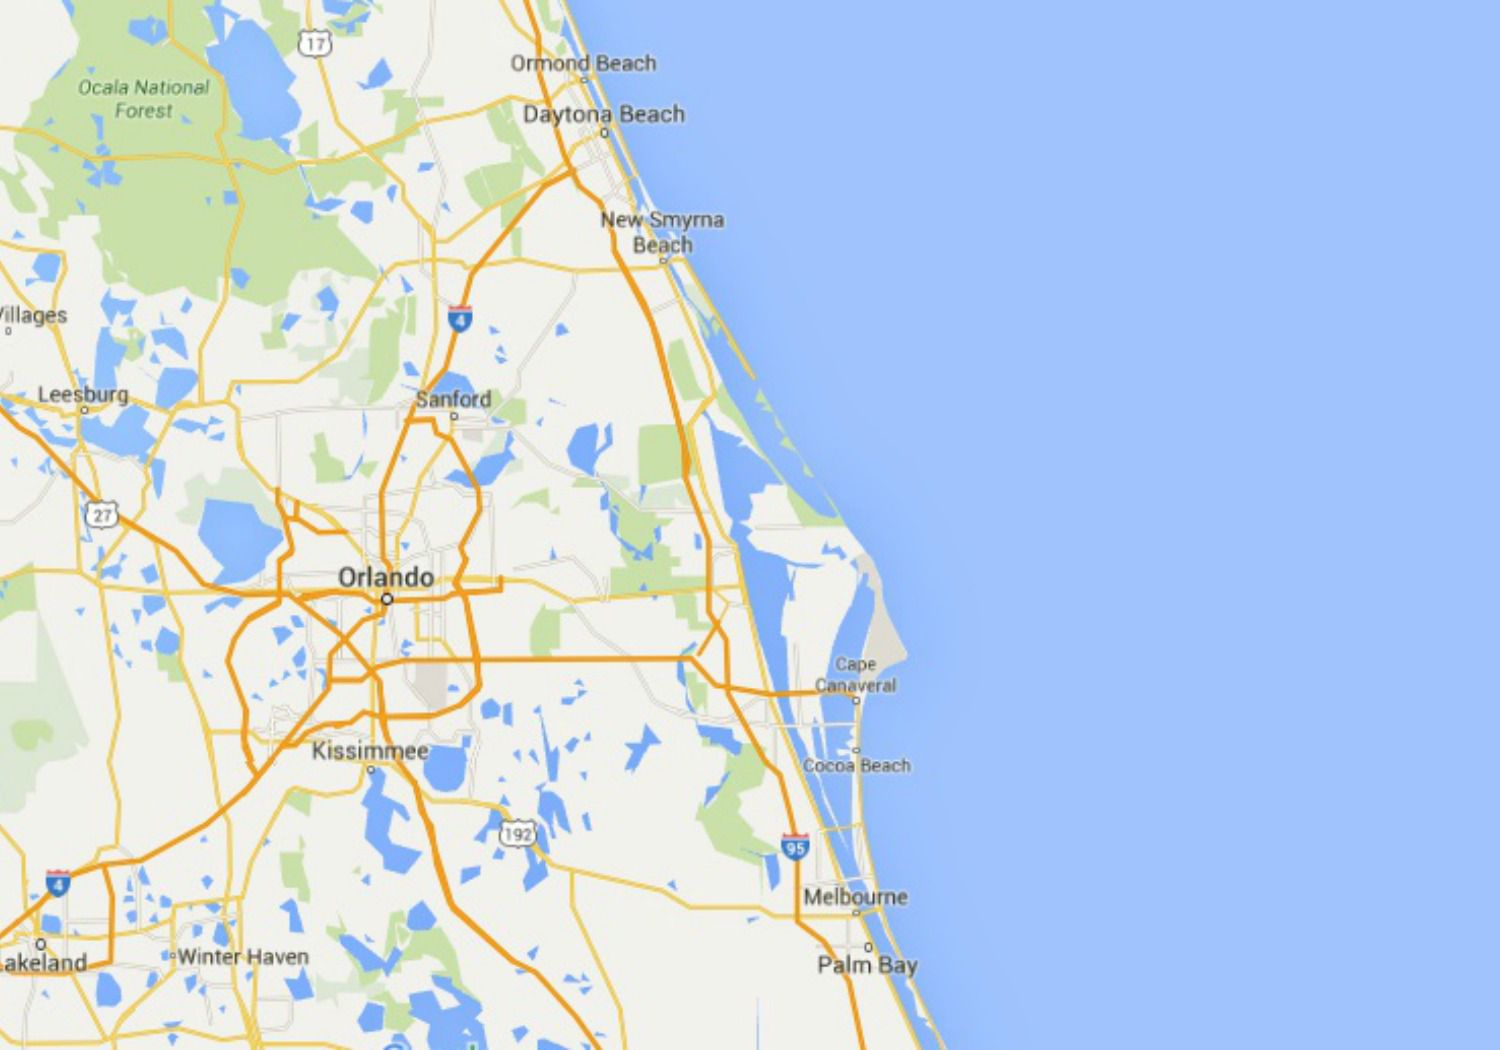 Maps Of Florida: Orlando, Tampa, Miami, Keys, And More - Coco Beach Florida Map